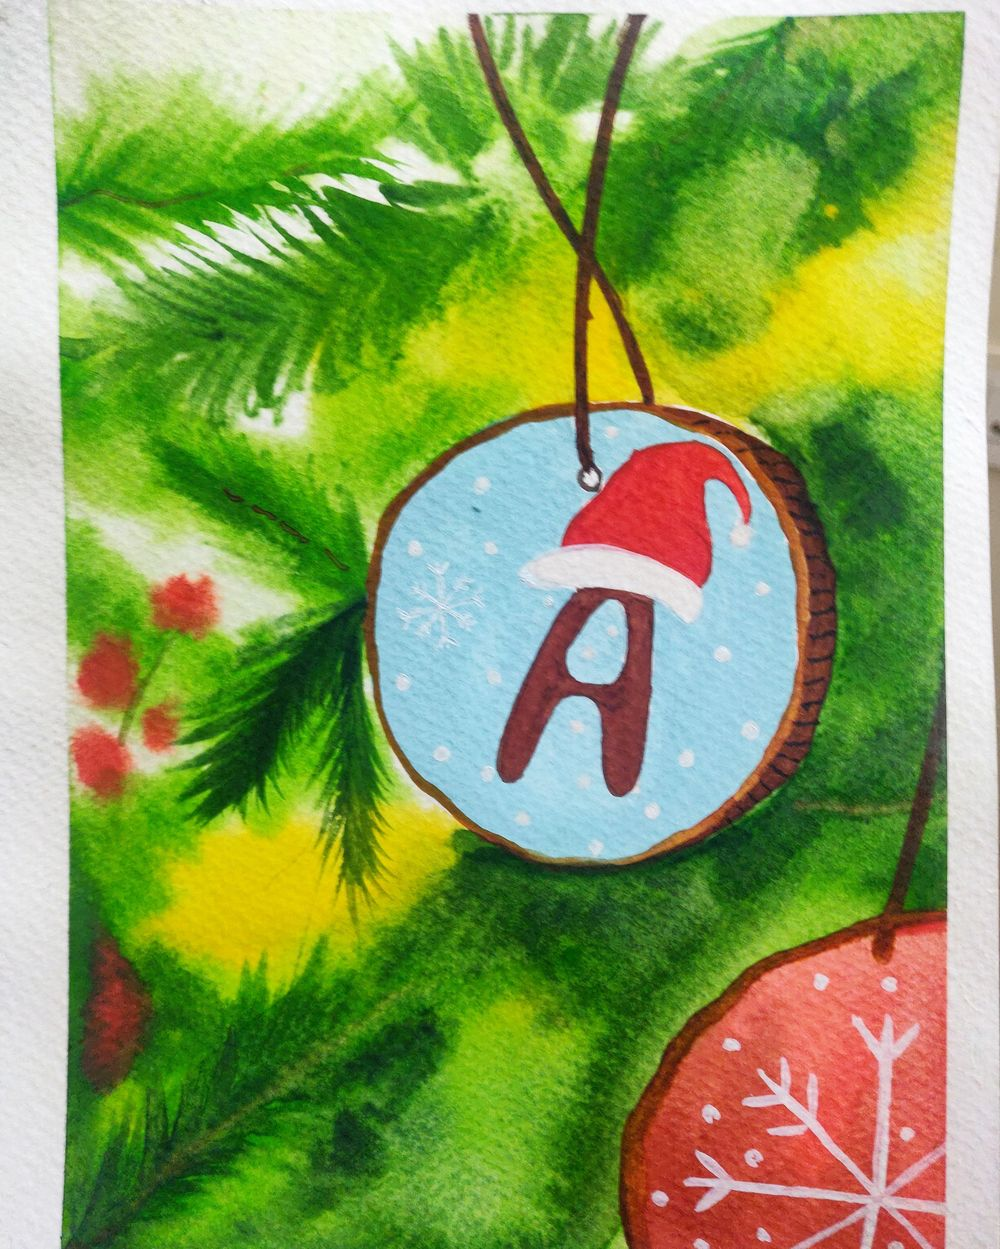 Countdown to Christmas - image 10 - student project